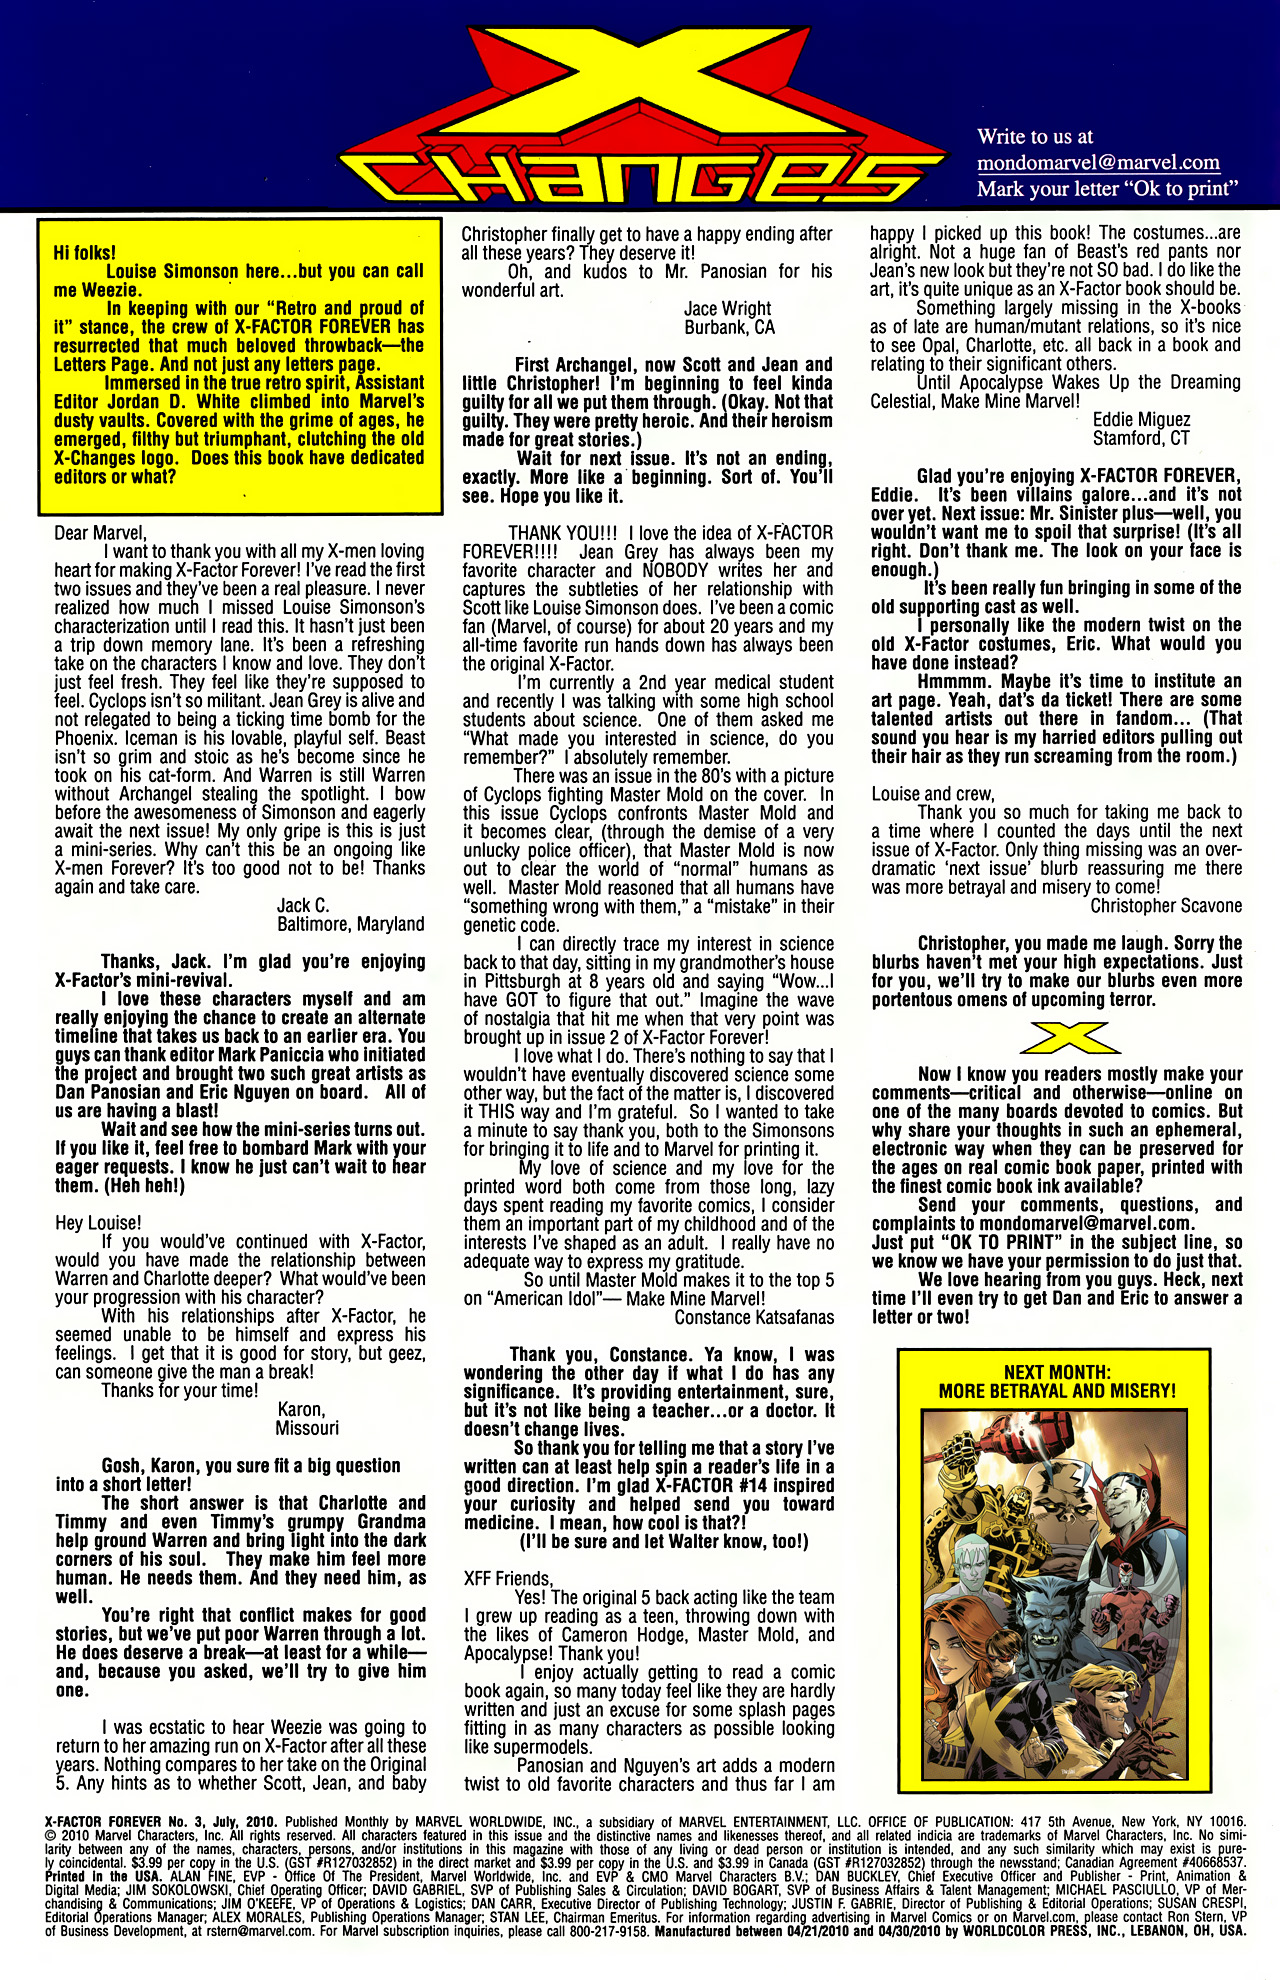 Read online X-Factor Forever comic -  Issue #3 - 22